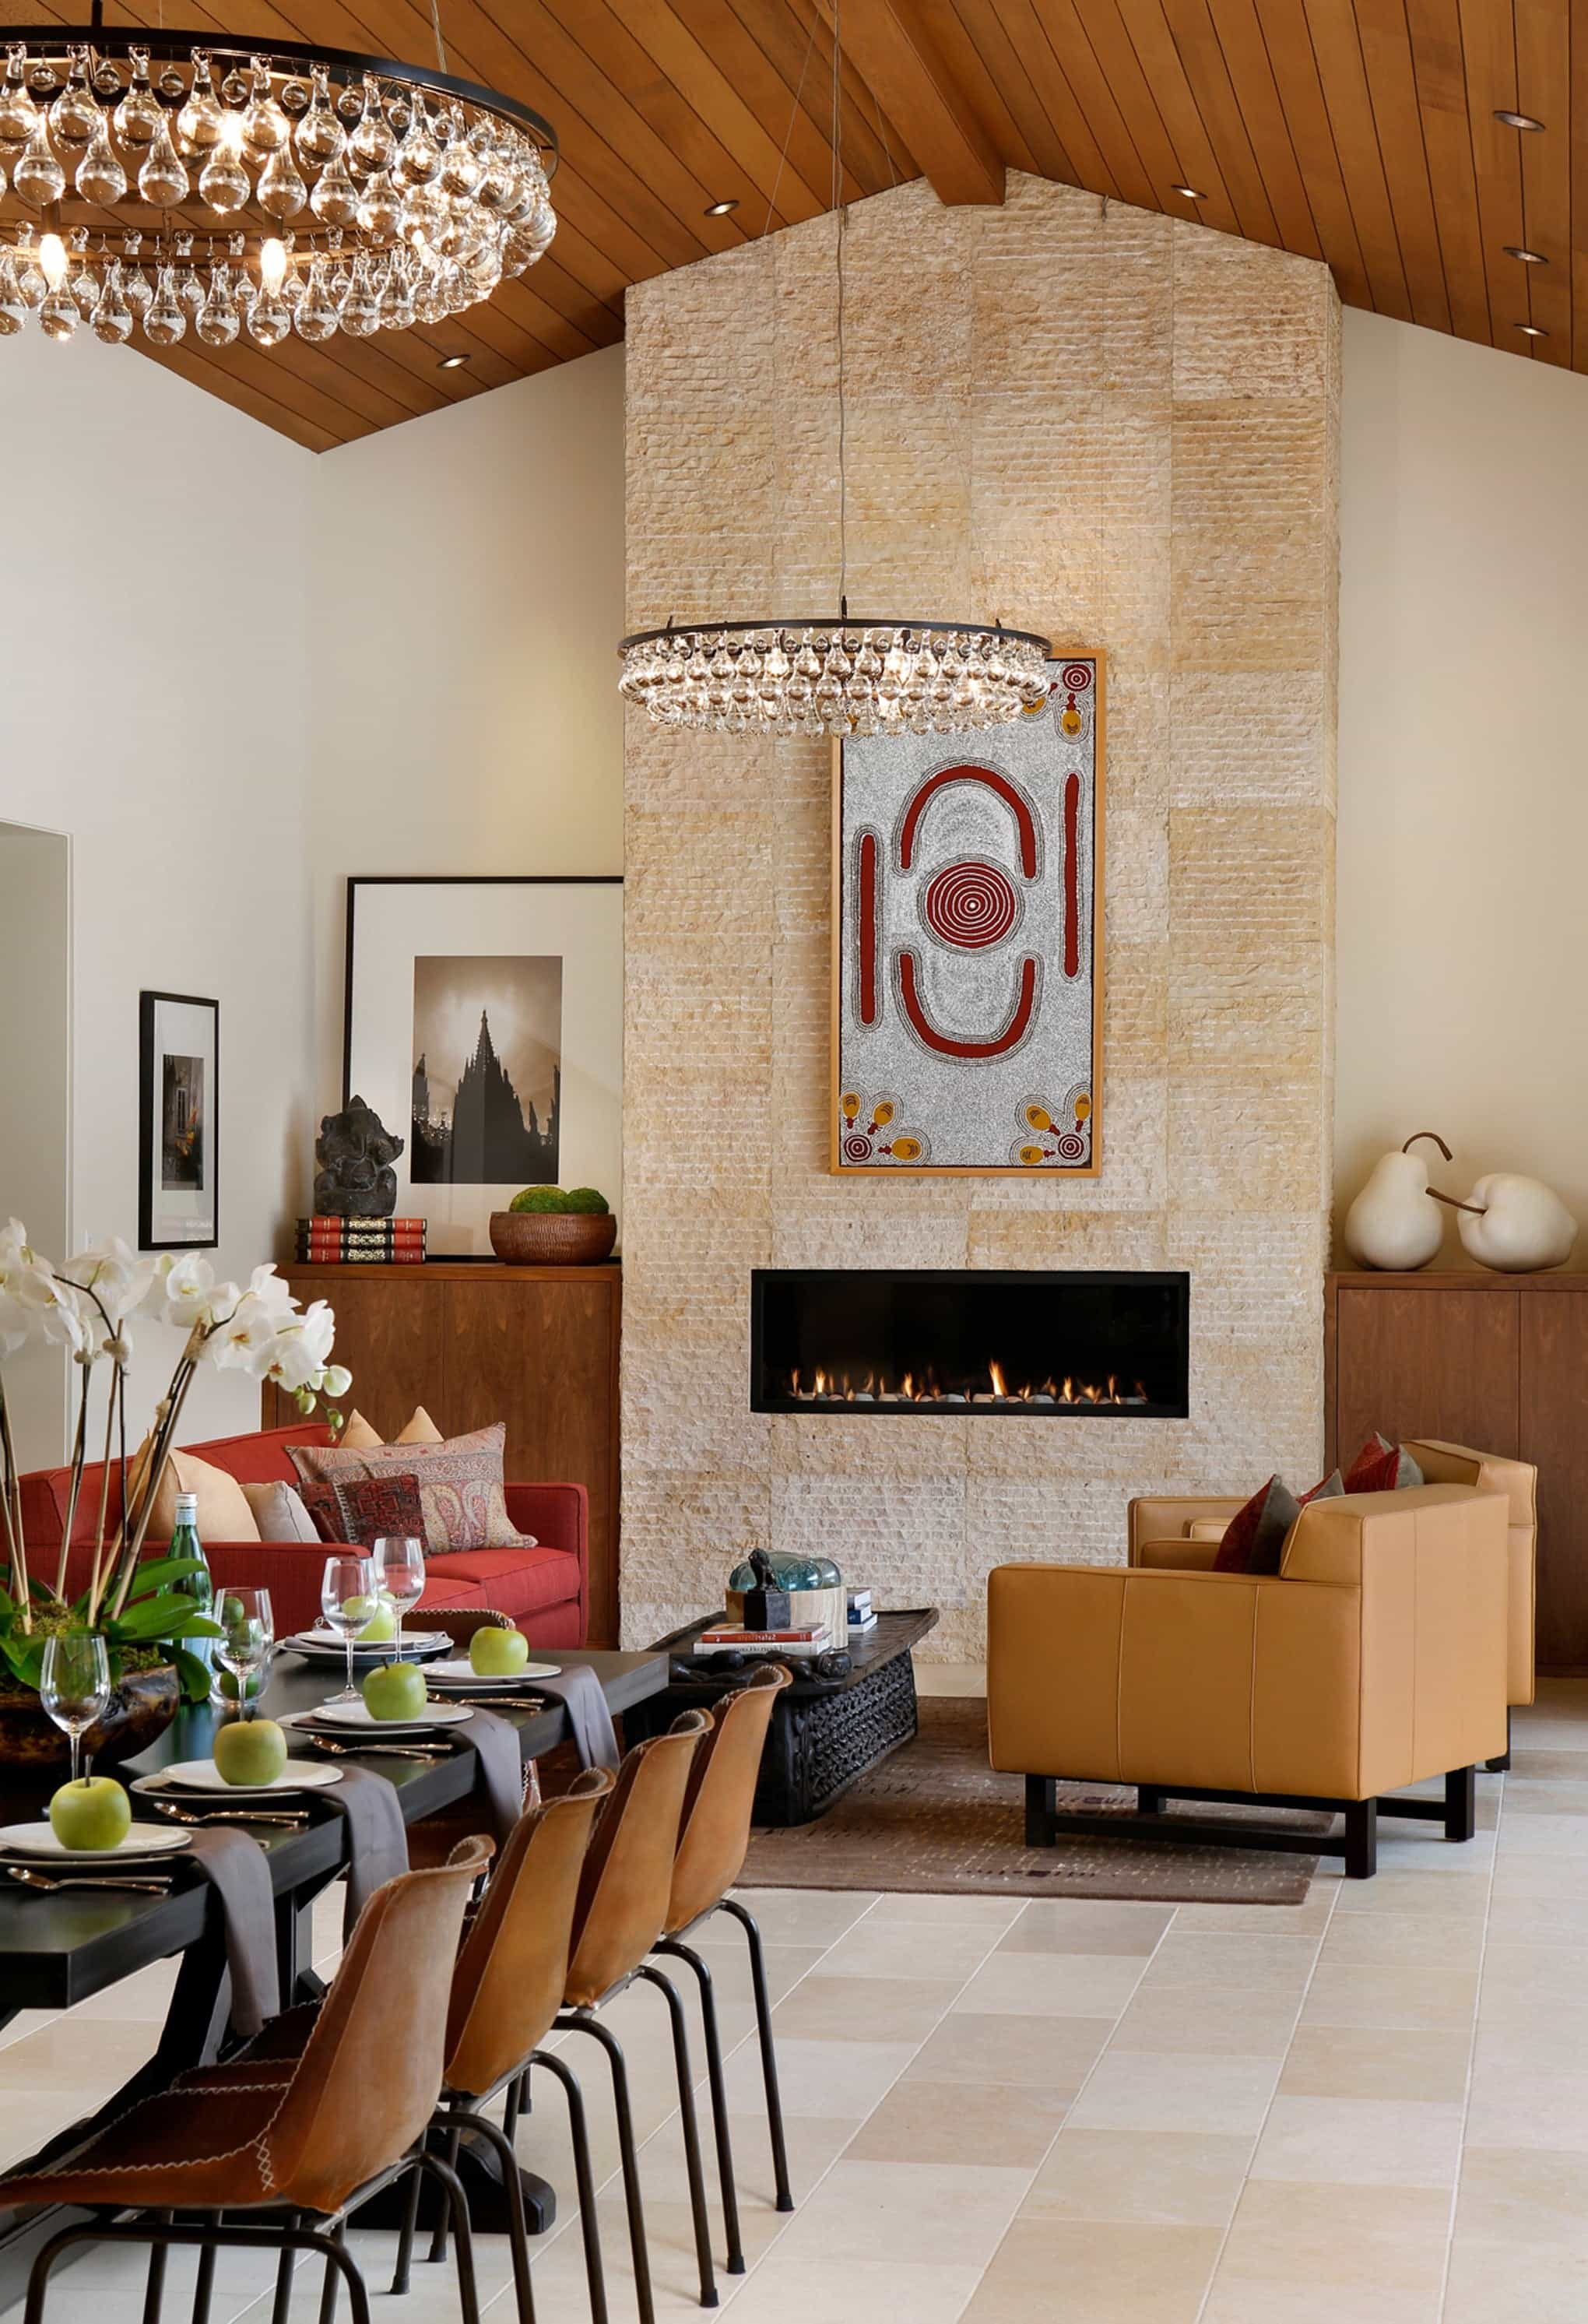 Featured Image of Stunning Zen Inspired Dining And Living Room With Circular Chandeliers